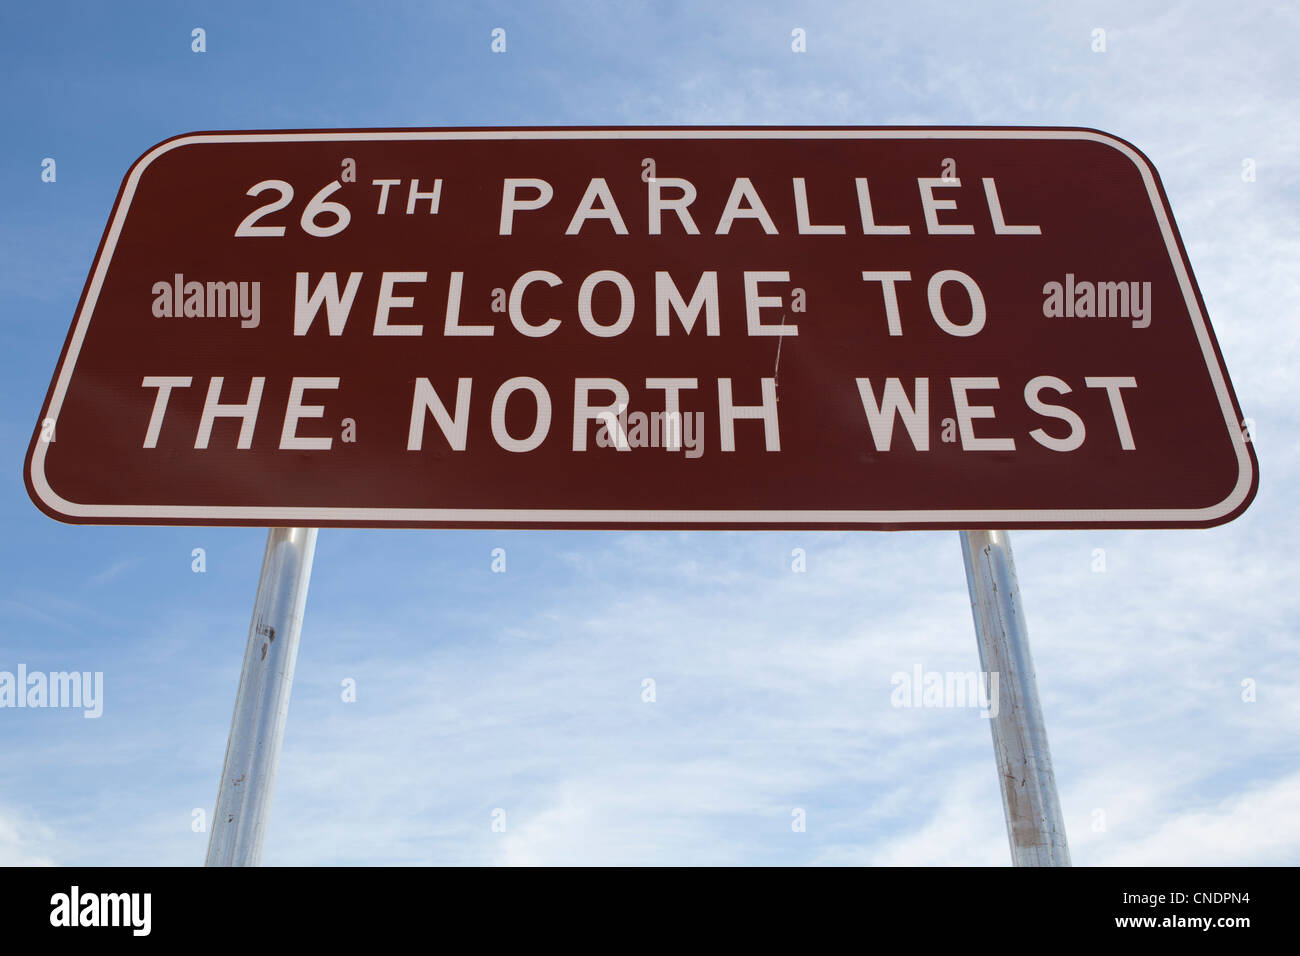 Map Of Western Australia 26th Parallel.Parallel Stock Photos Parallel Stock Images Alamy